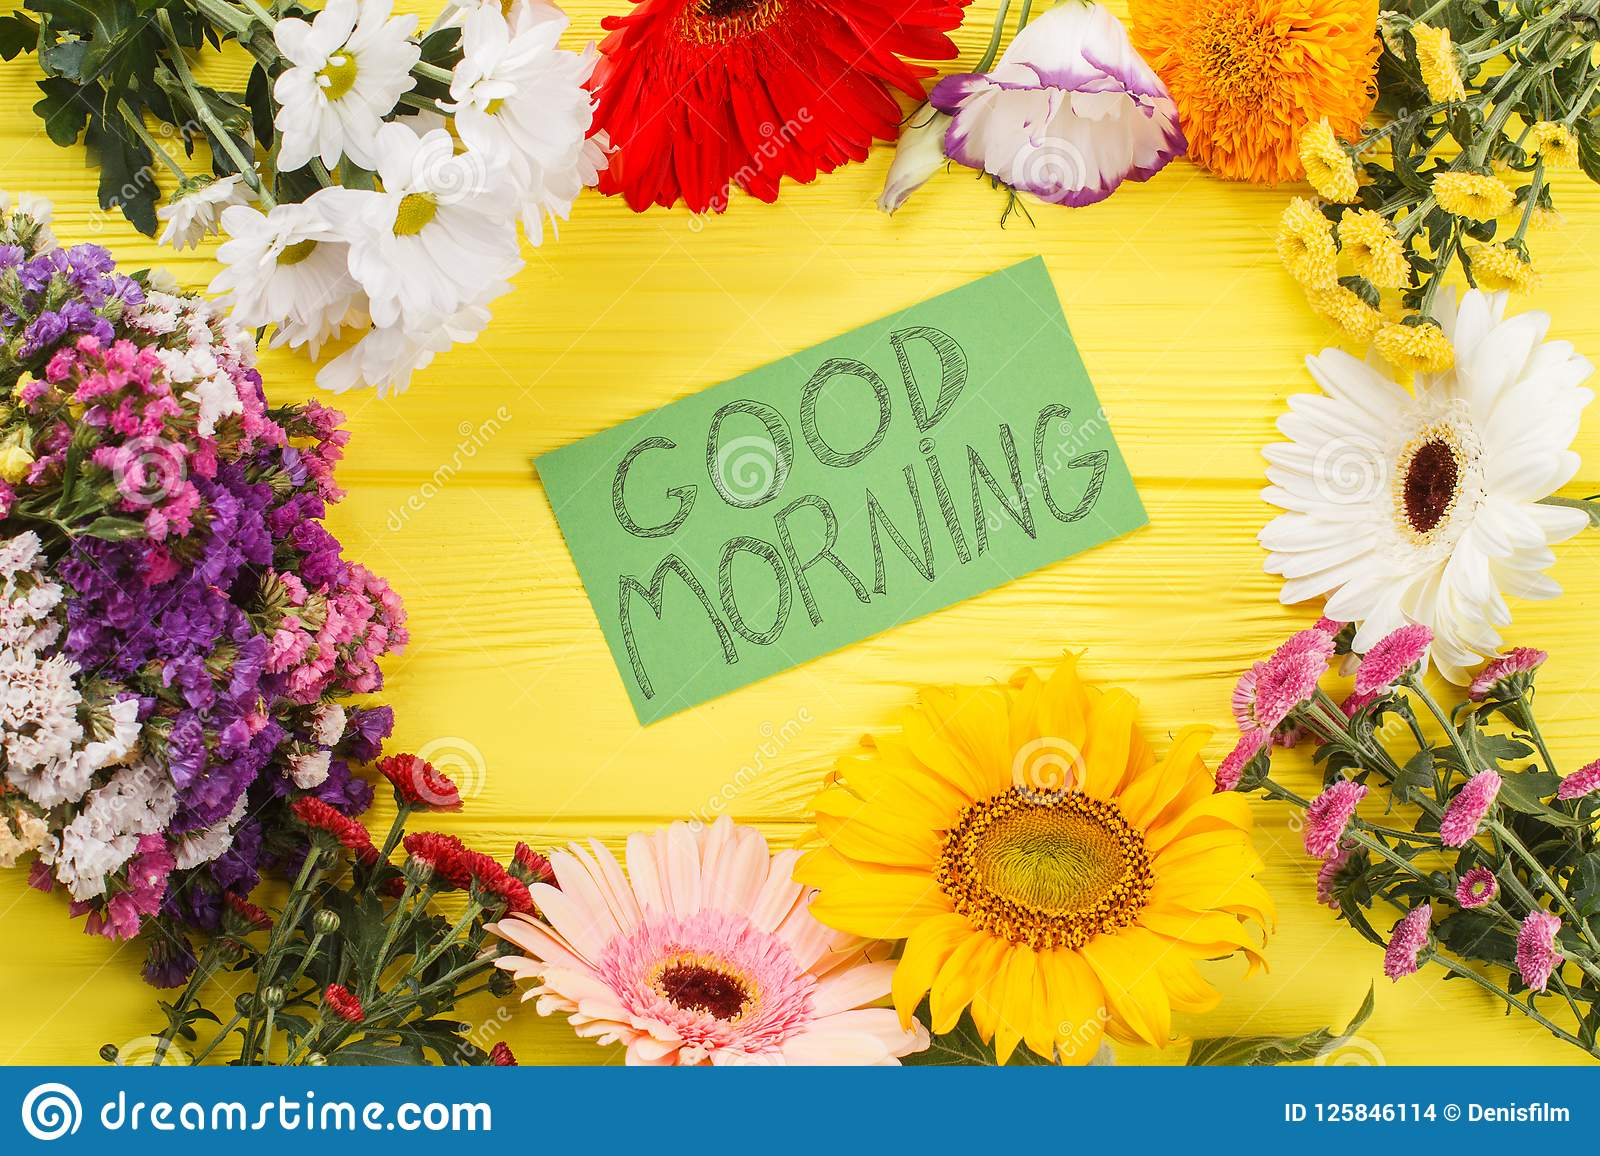 Lovely Good Morning Wish And Flowers Stock Photo Image Of Bouquet